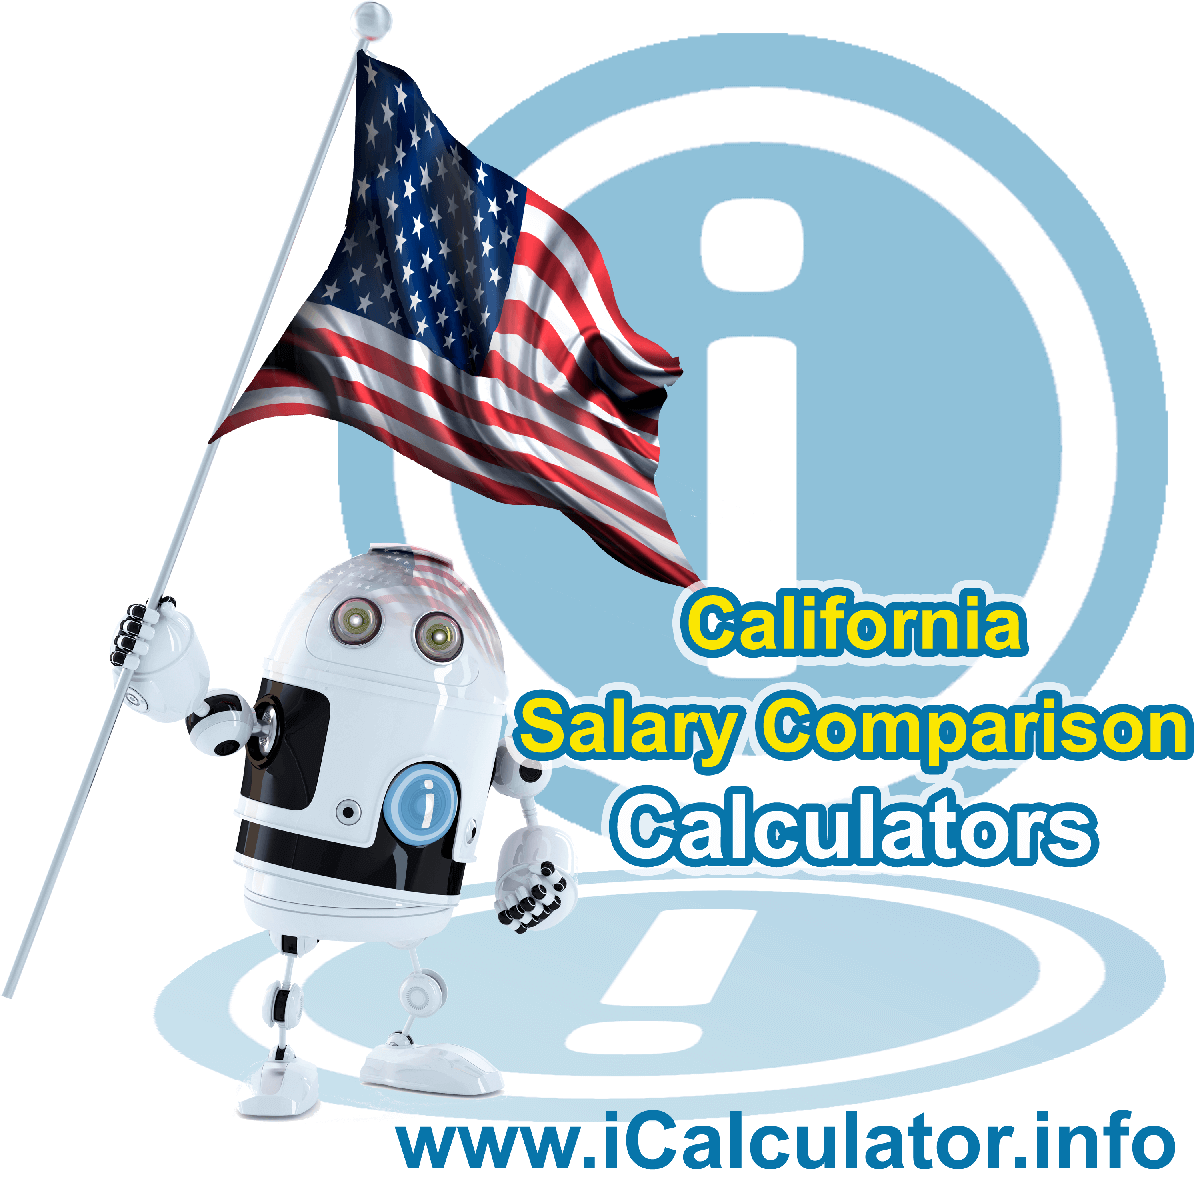 California Salary Comparison Calculator 2021 | iCalculator™ | The California Salary Comparison Calculator allows you to quickly calculate and compare upto 6 salaries in California or between other states for the 2021 tax year and historical tax years. Its an excellent tool for jobseekers, pay raise comparison and comparison of salaries between different US States